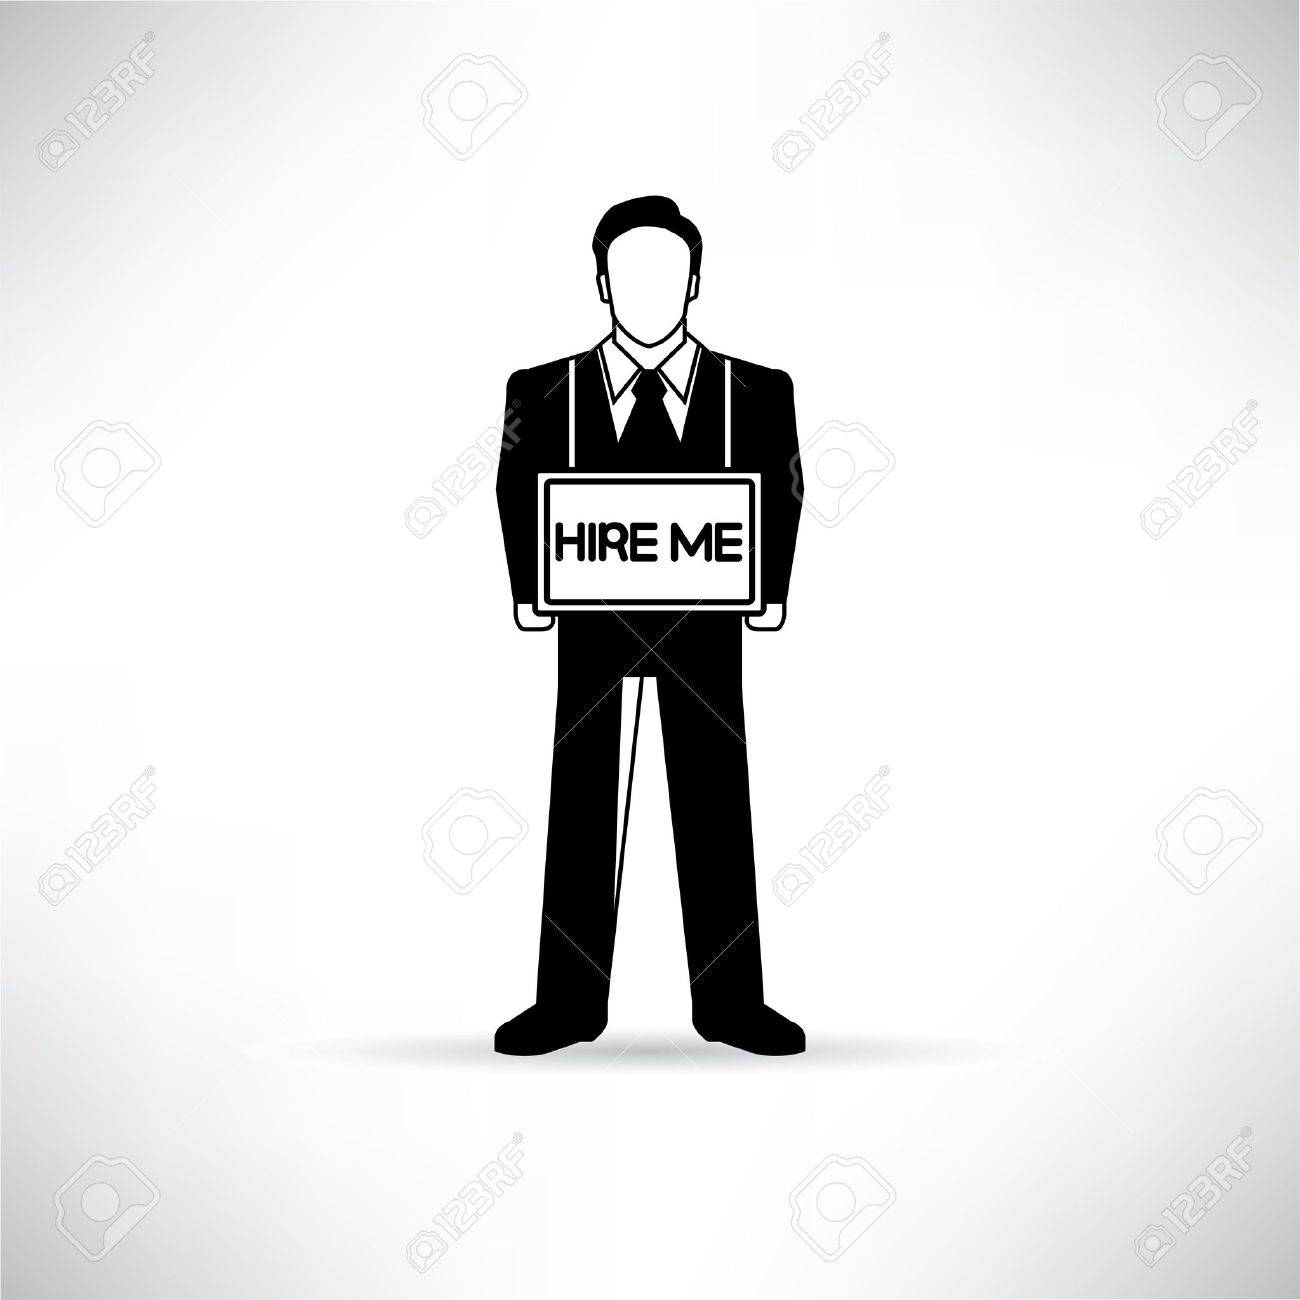 job seeking stock vector illustration and royalty job job seeking job seeker